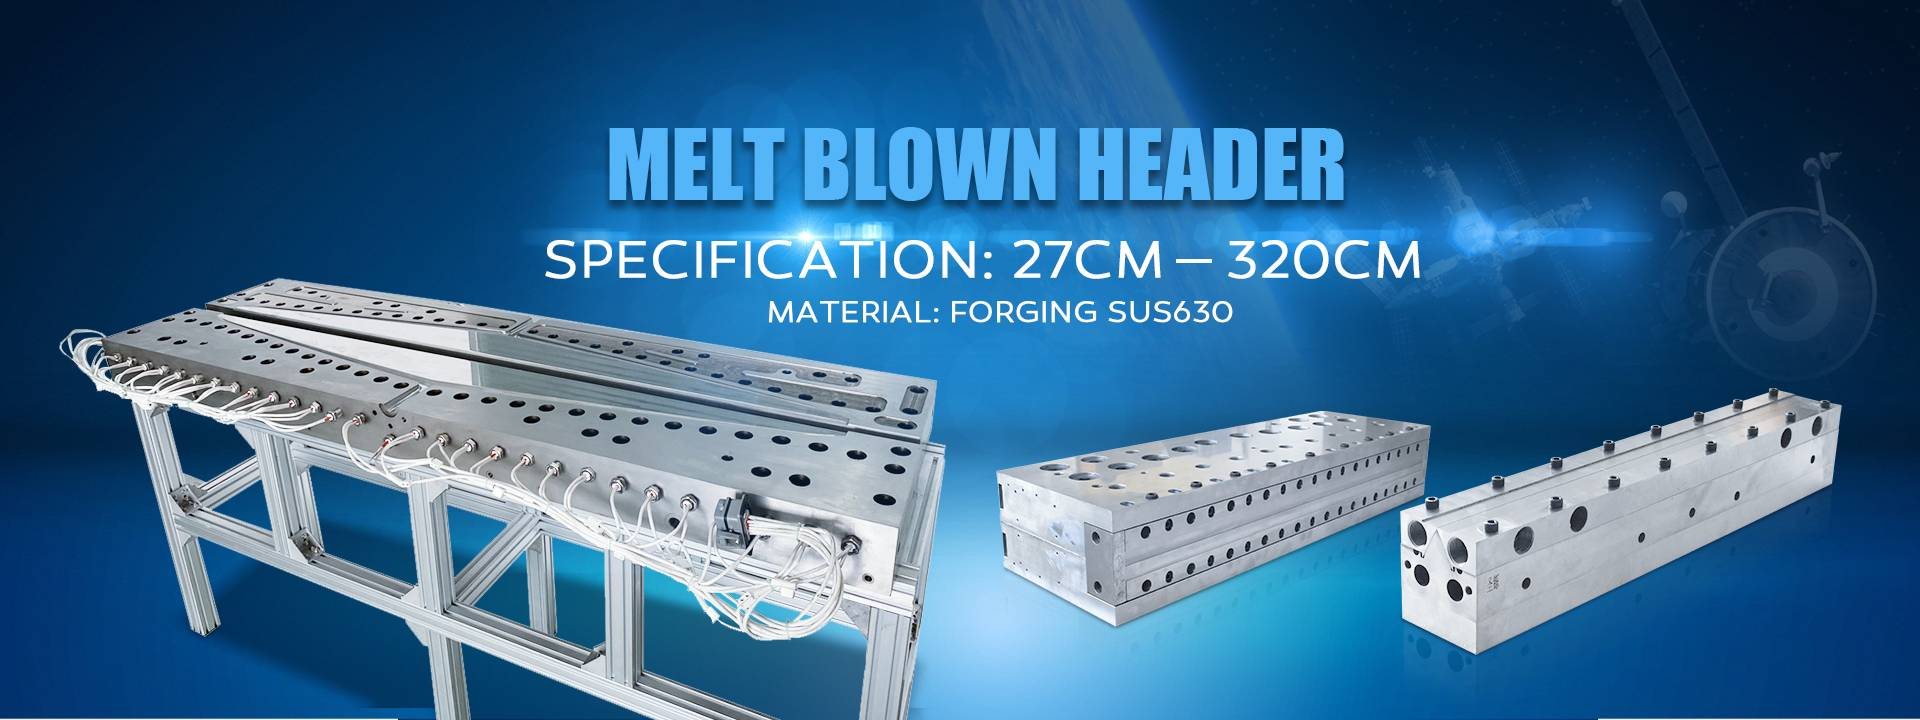 melt-blown-header-product